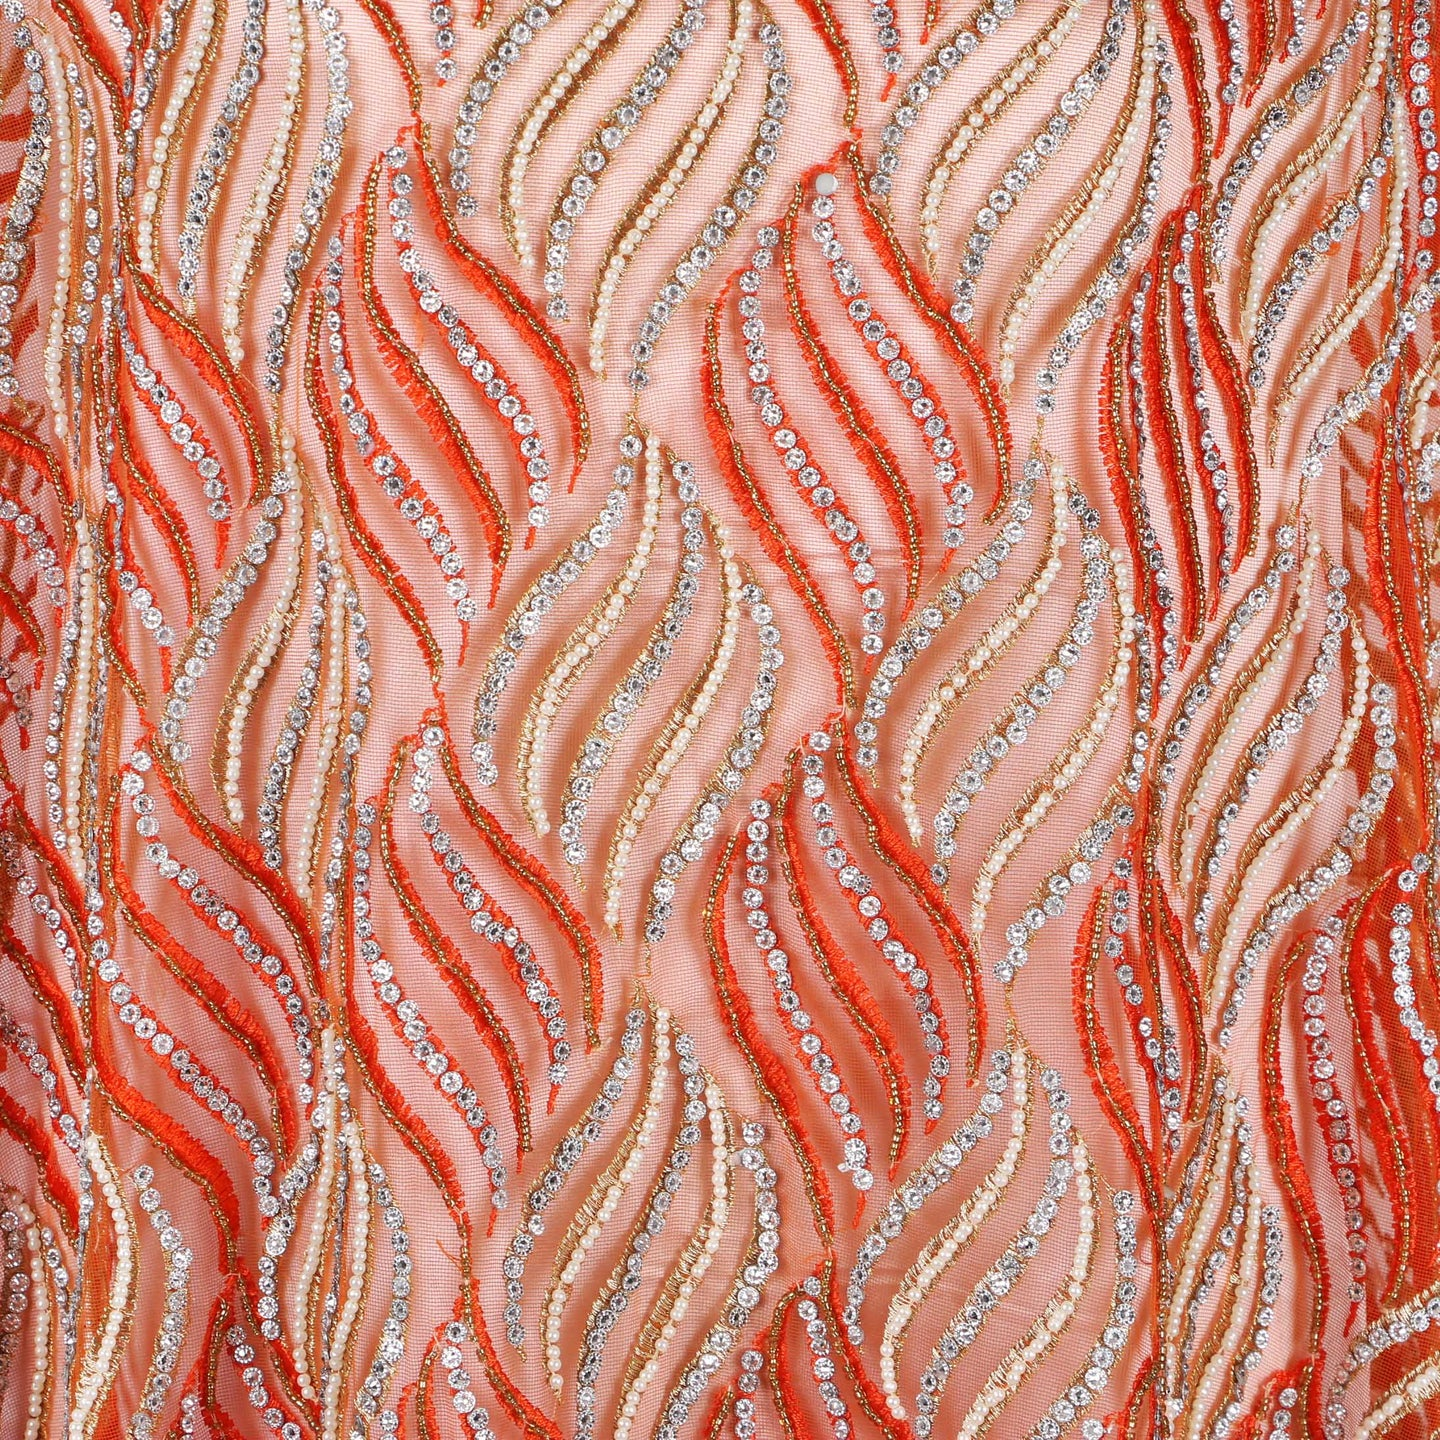 Hand Embroidered Fabric Design # 4114 - Orange - Per Yard